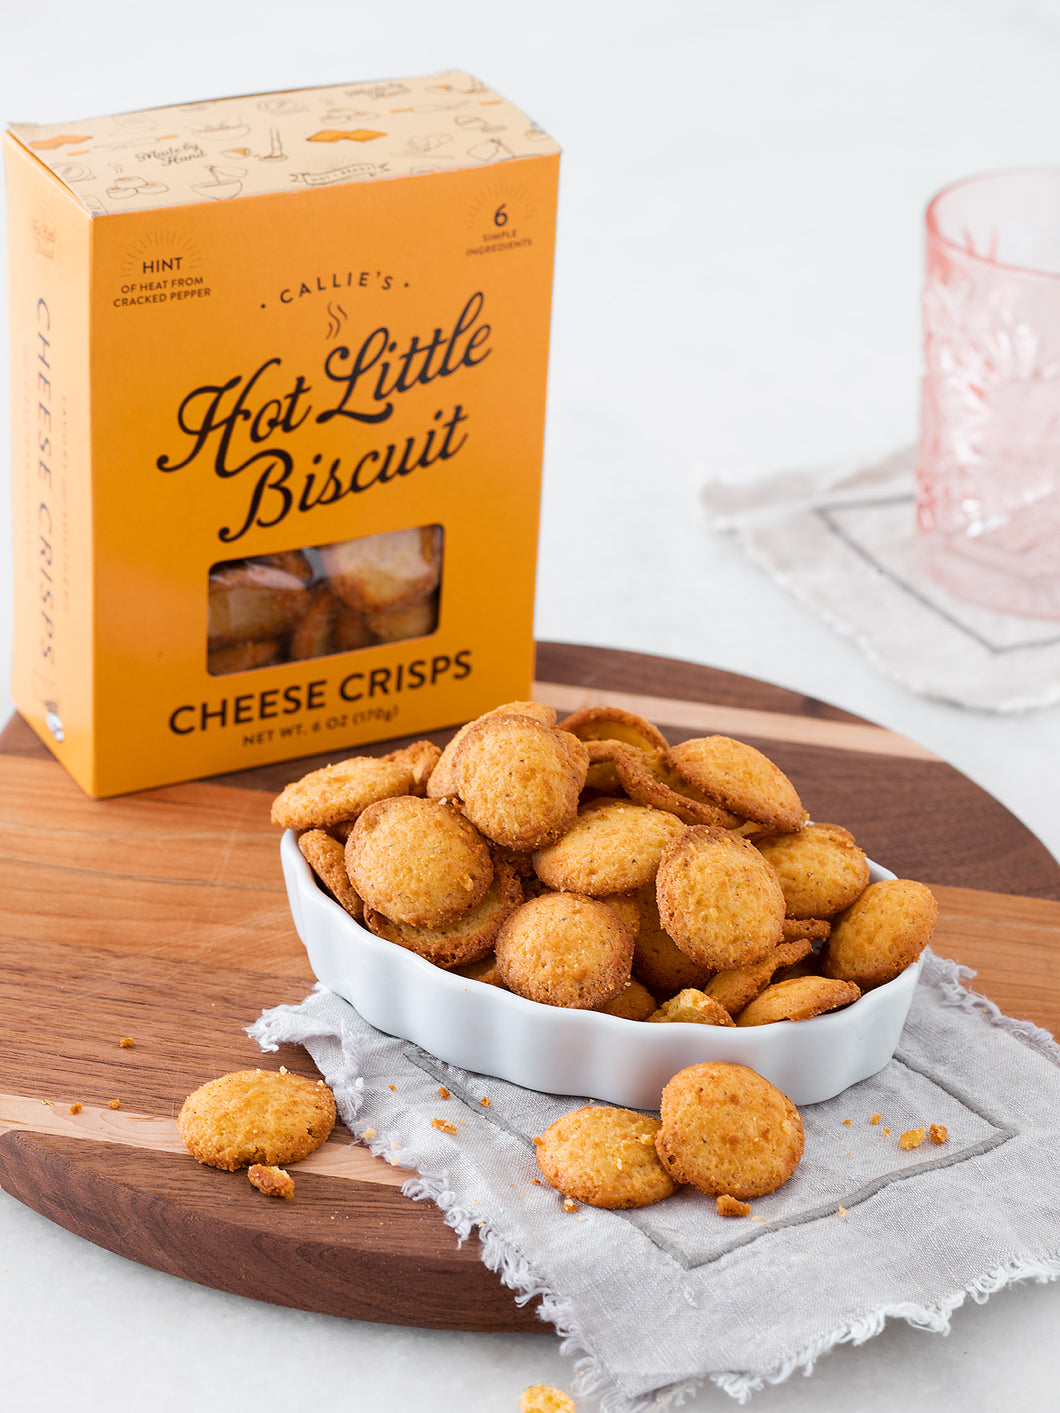 CALLIE'S BISCUITS- CHEESE CRISPS